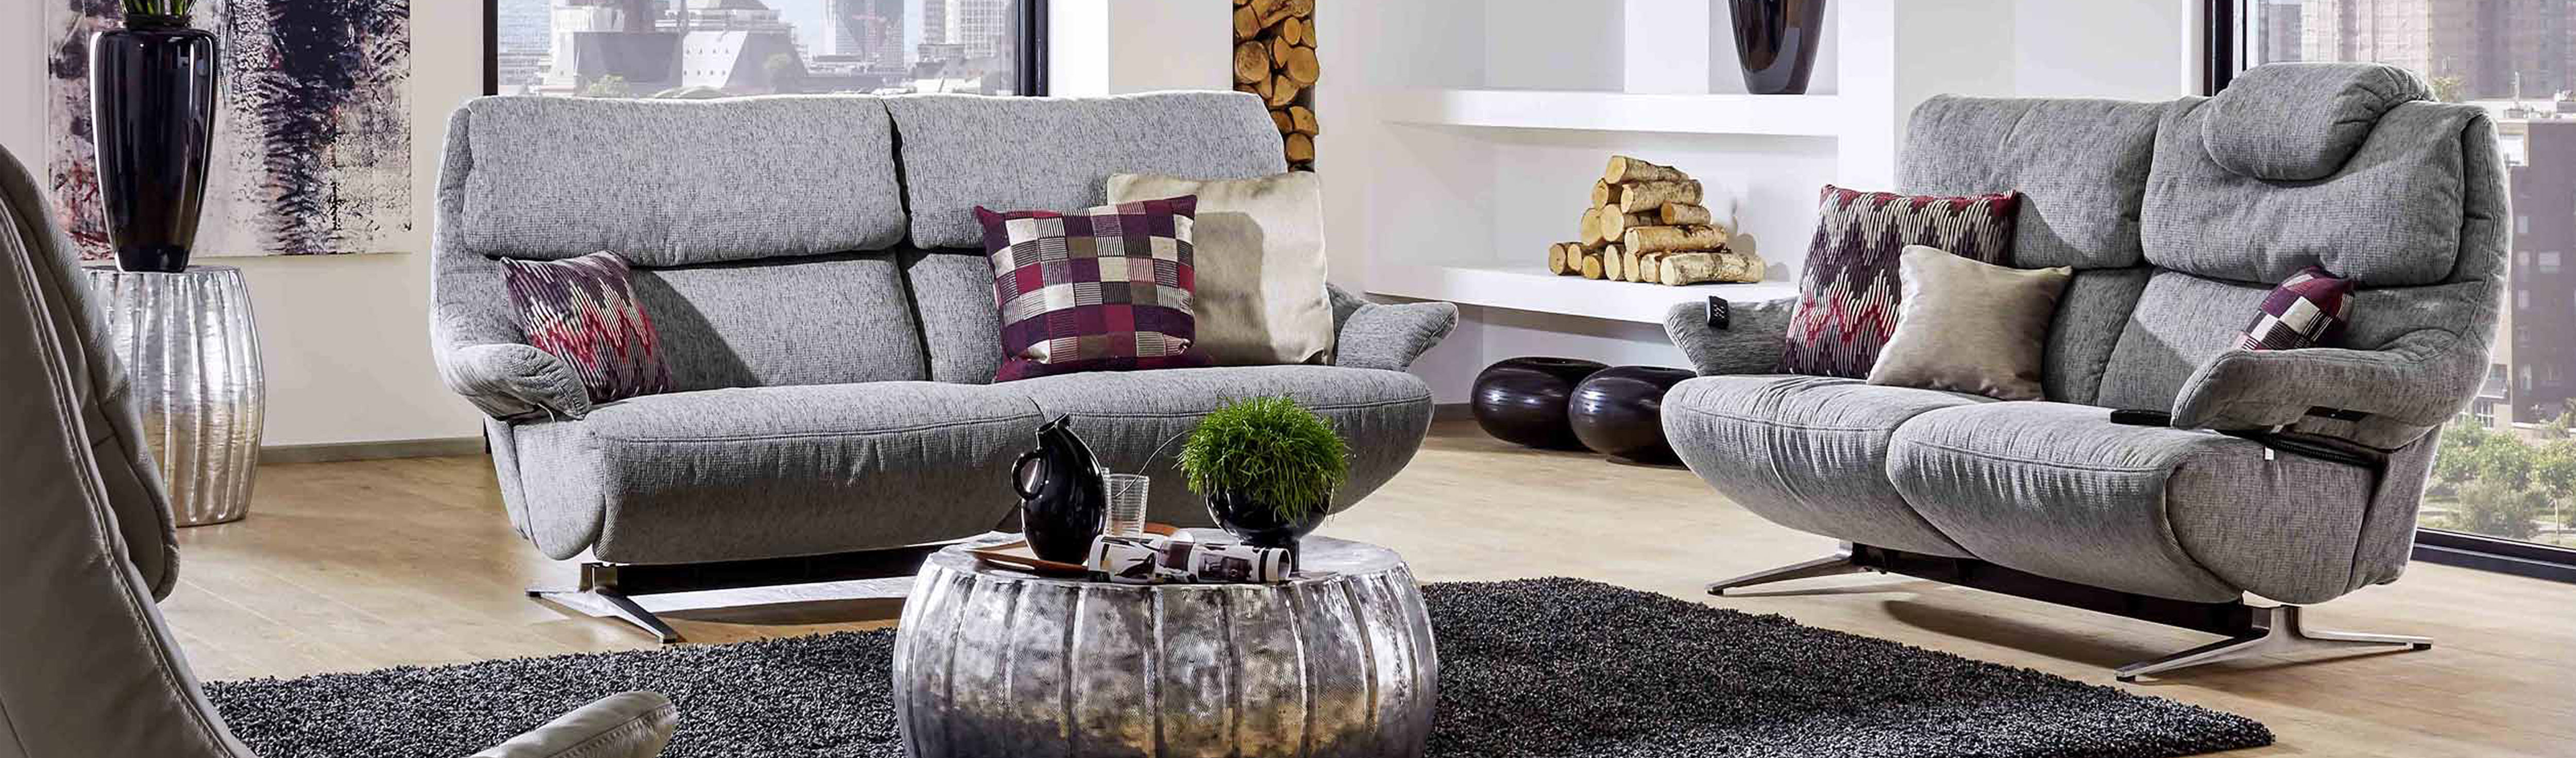 fauteuil relax himolla simmons